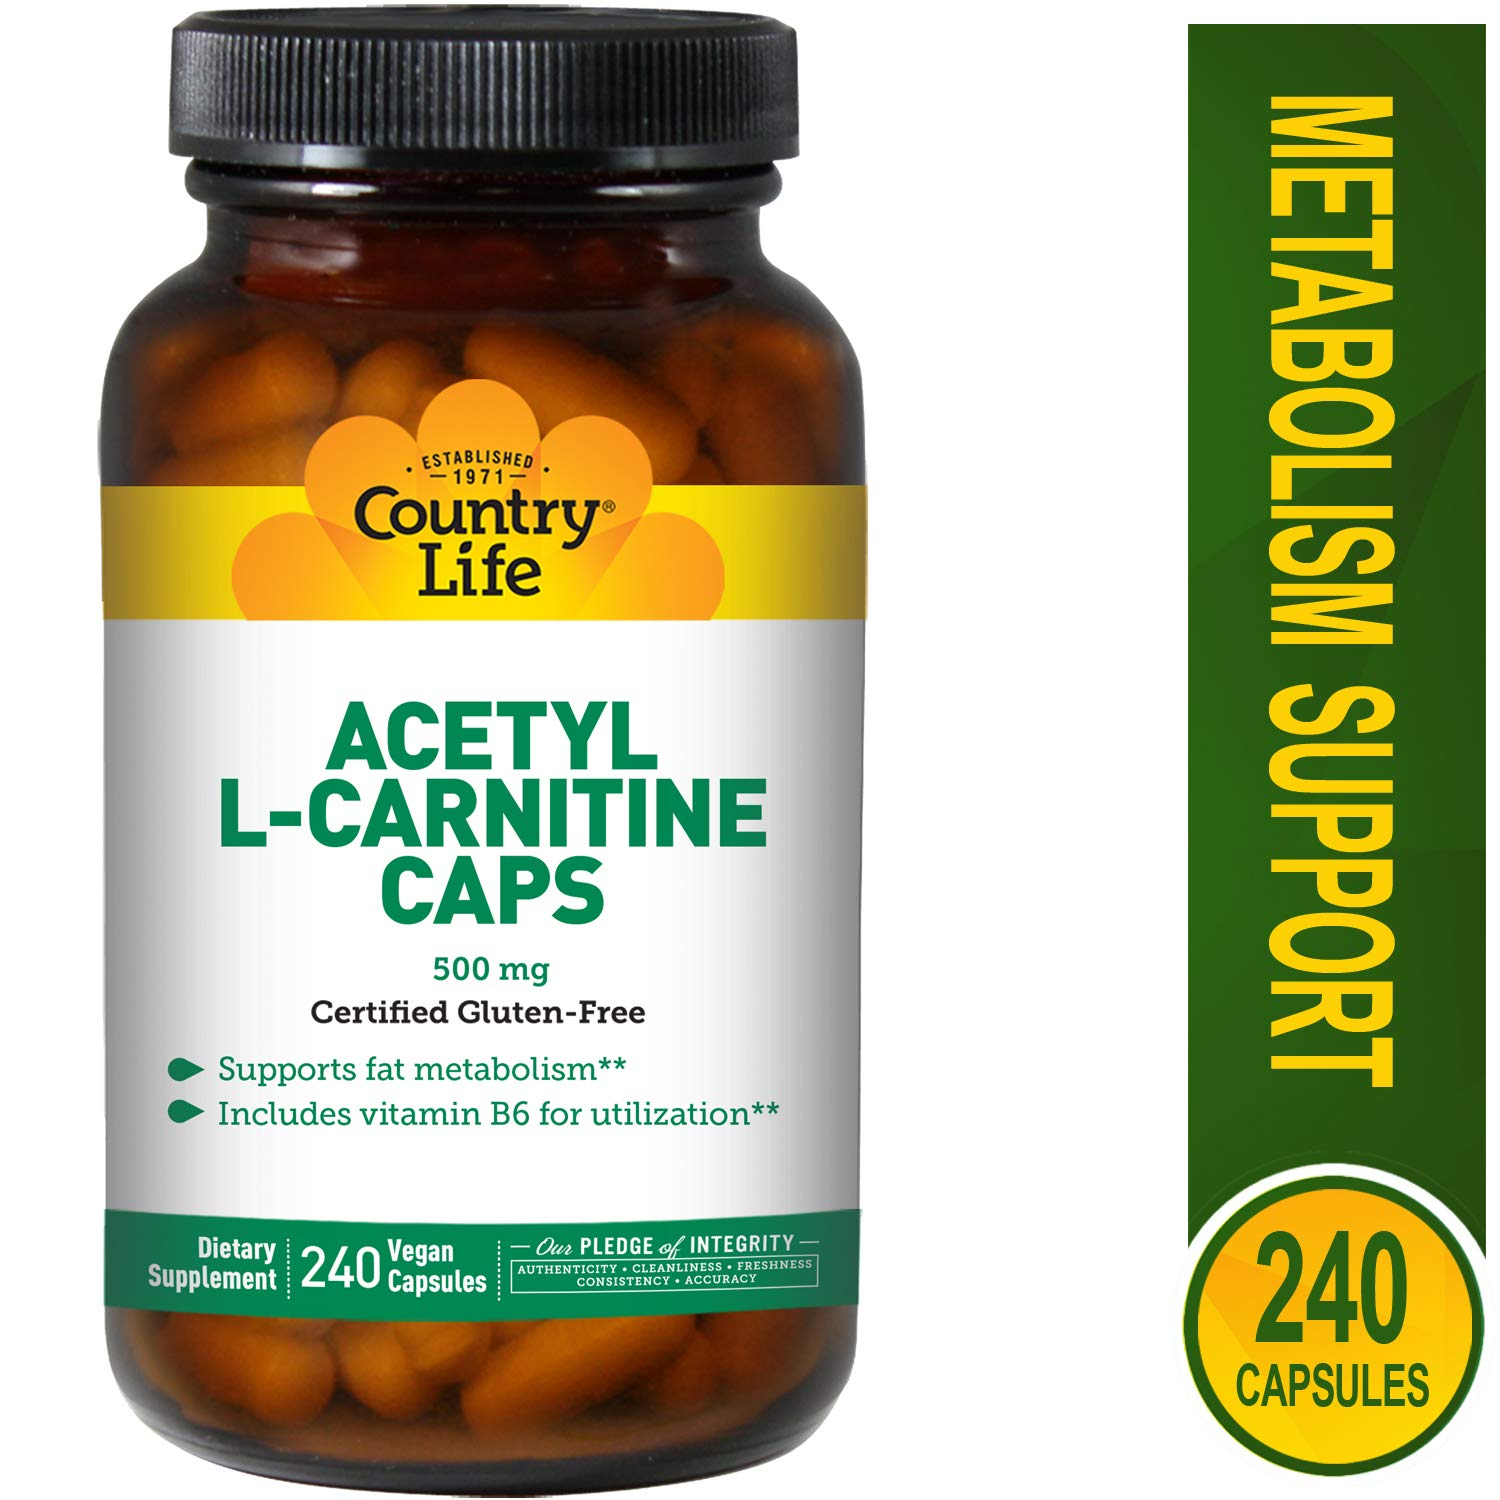 Country Life Acetyl L-Carnitine, 500 mg with B-6 - 240 Vegan Capsules